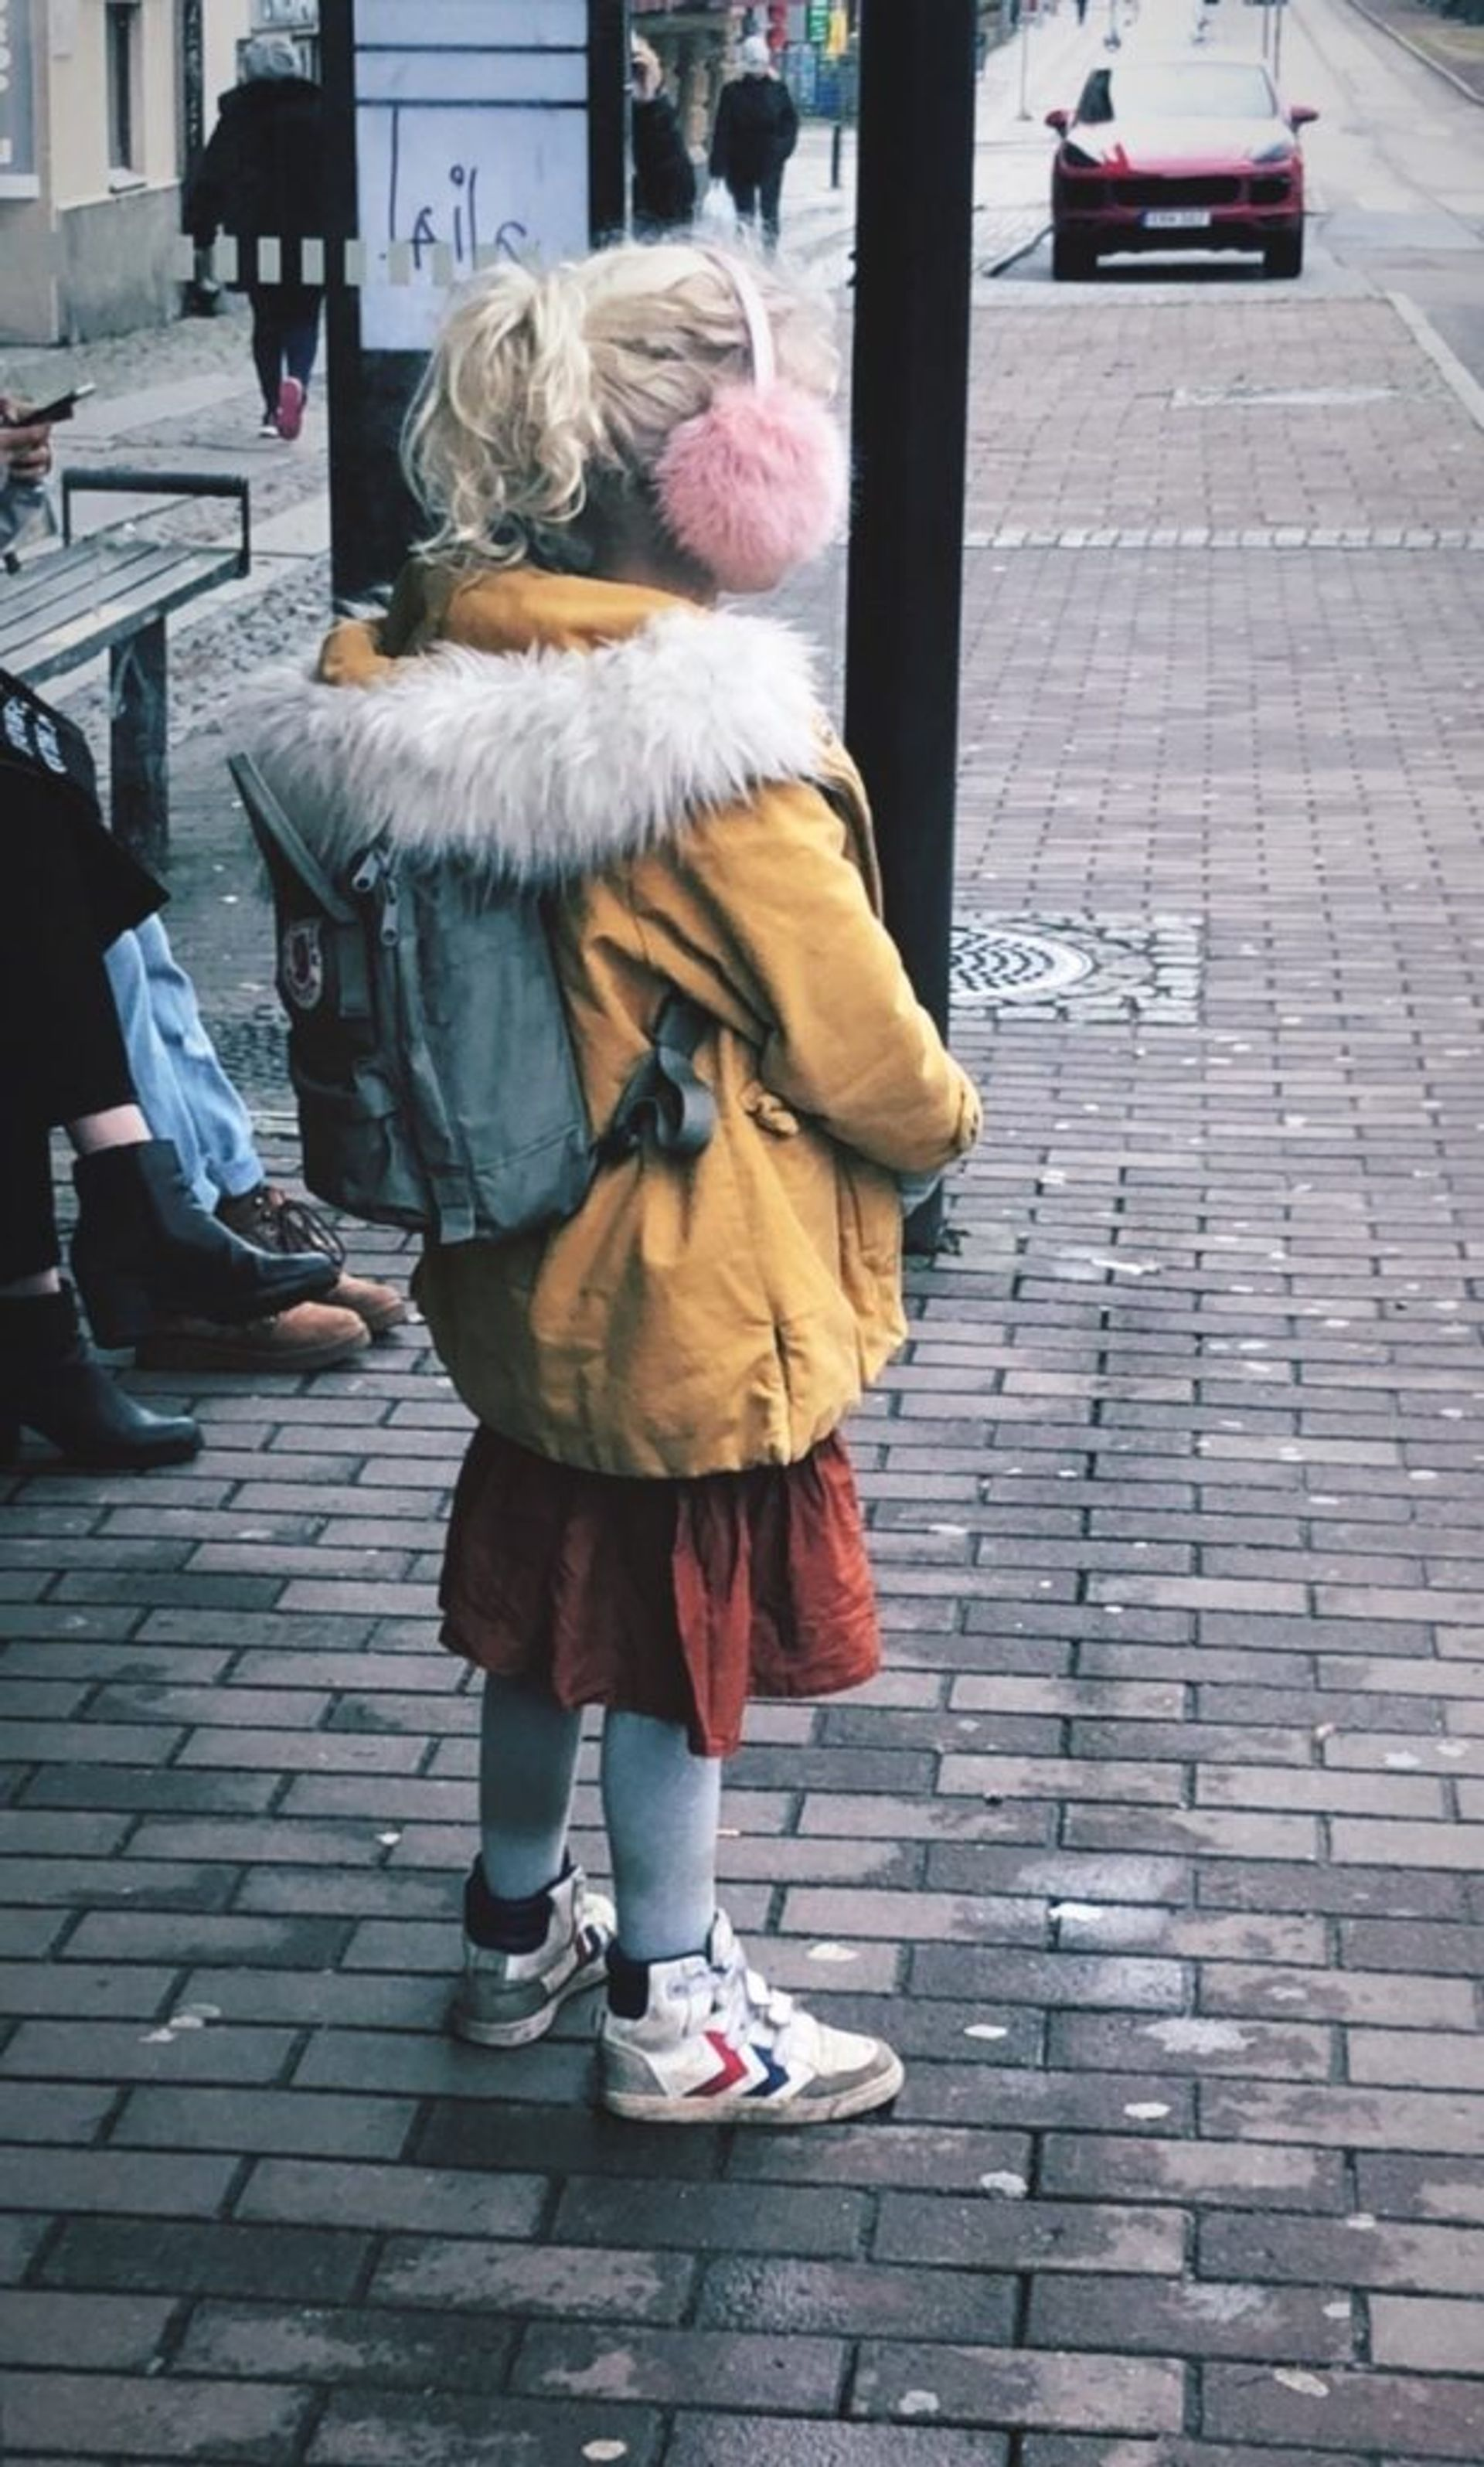 A child standing at a bus stop.